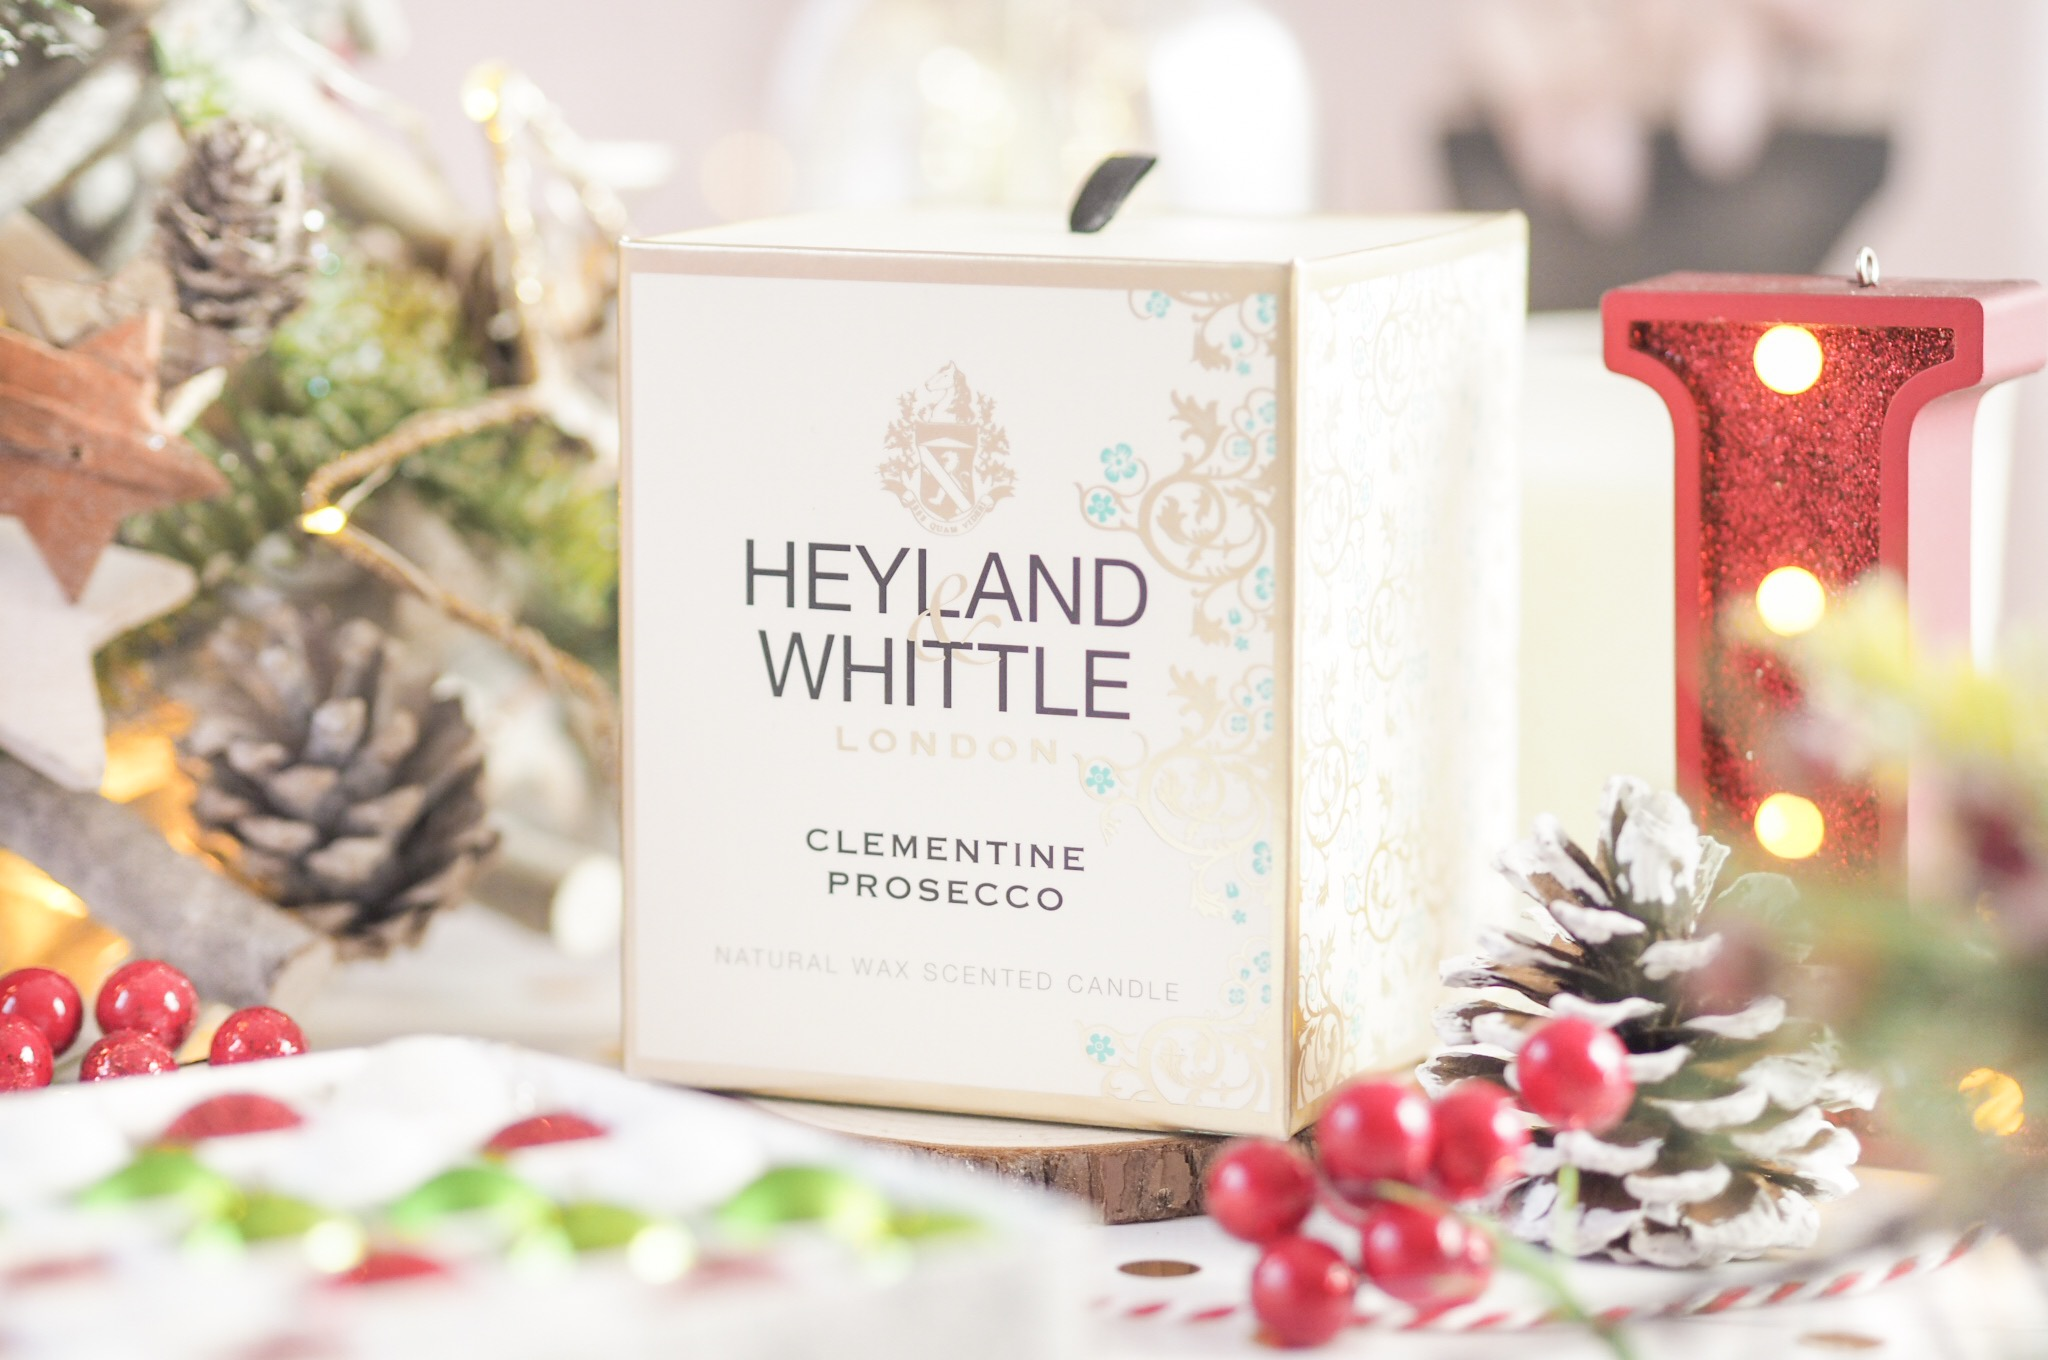 Heyland & Whittle Clementine & Prosecco Candle Review